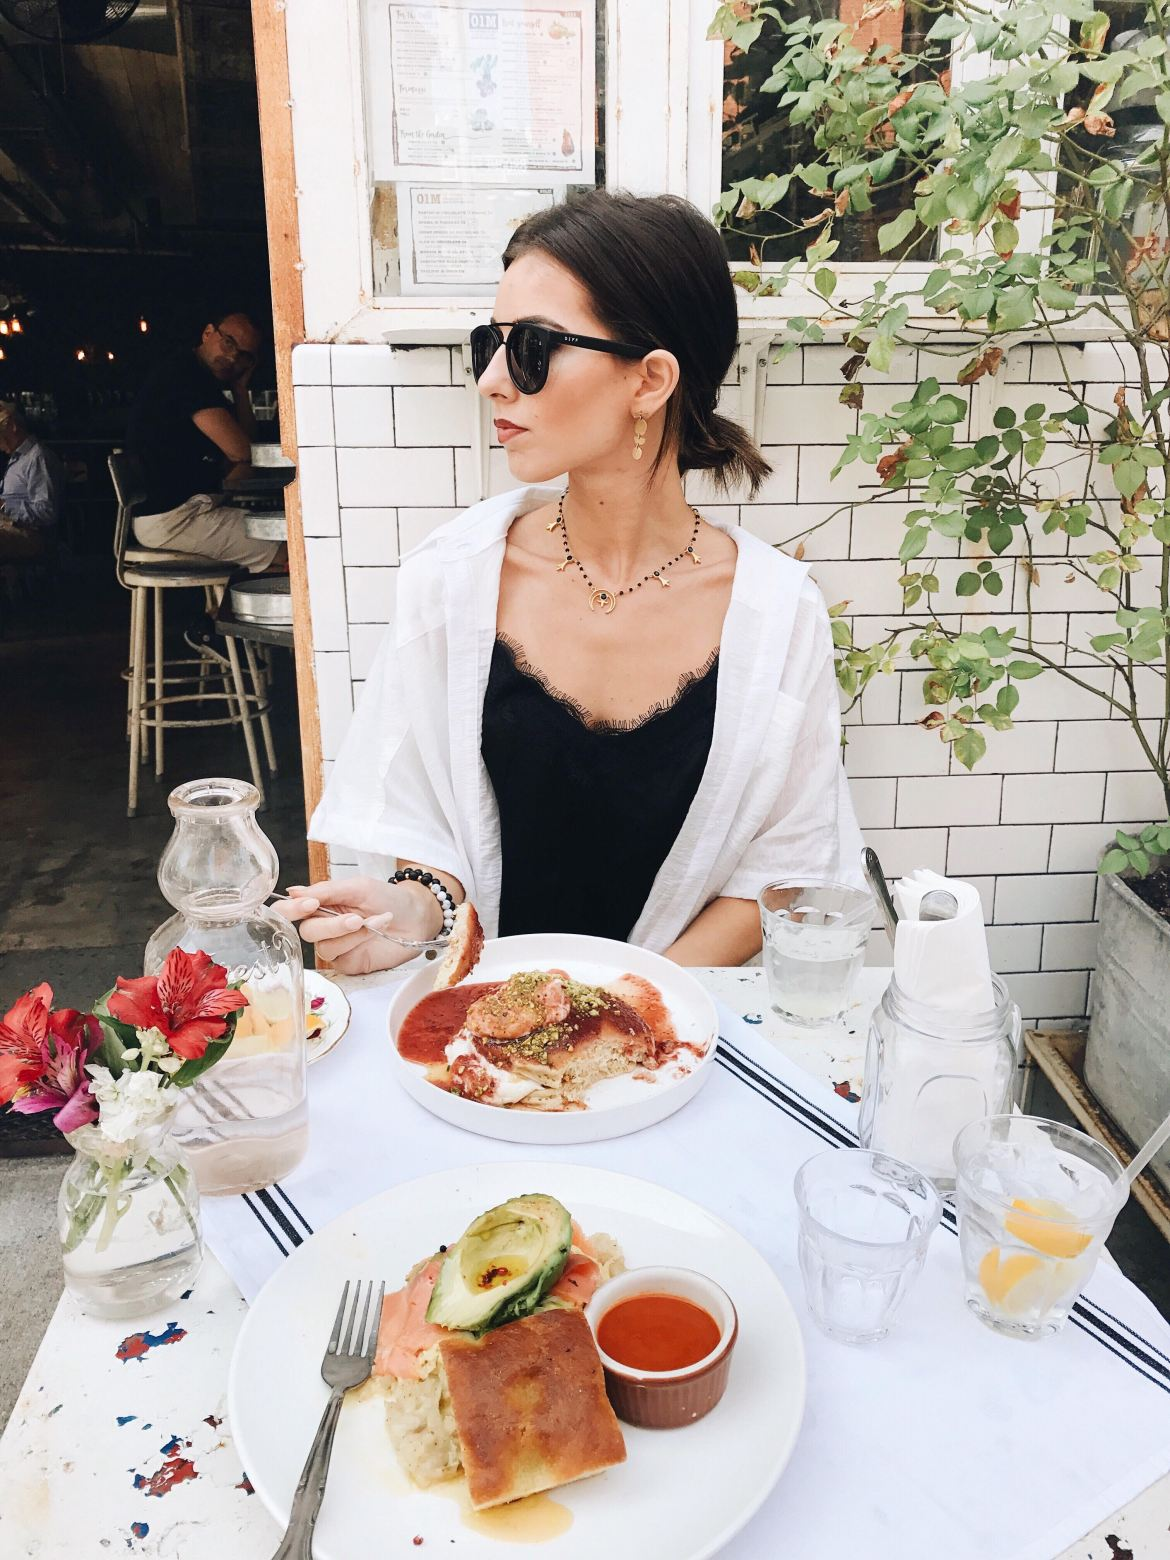 New York Fashion Week 2017 by Ashley Hodges of Ashley Terk // nyfw // NYC cafe // italian breakfast // pancakes // salmon // free people // nordstrom // diff eyewearNew York Fashion Week 2017 and Outfit Details featured by popular Los Angeles fashion blogger, Ashley Hodges